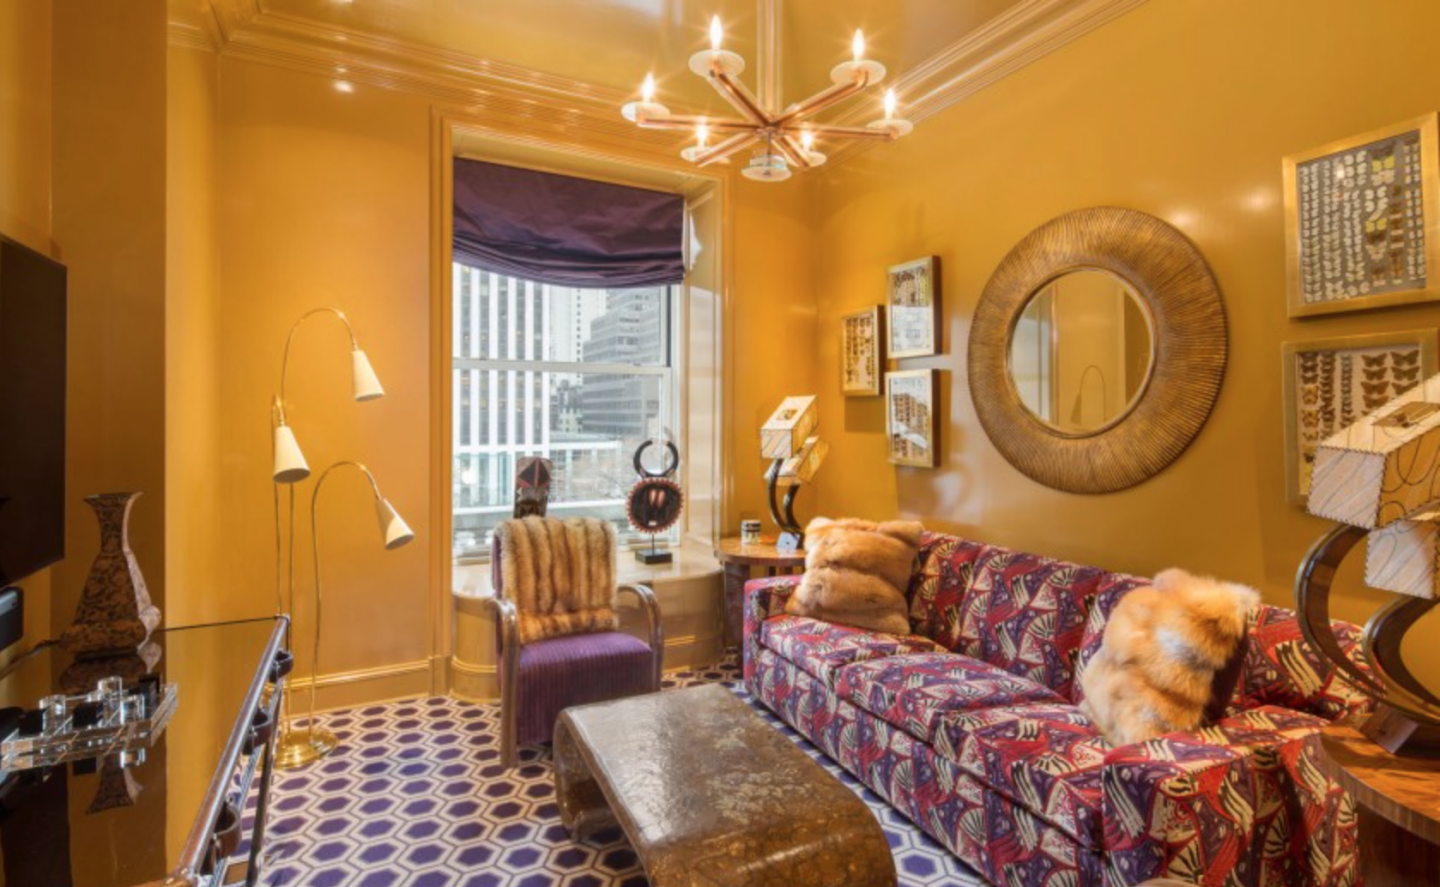 Wright's suite was renovated in 2011 by Louis Lisboa of VL Architects and interior designer Susanna Maggard.